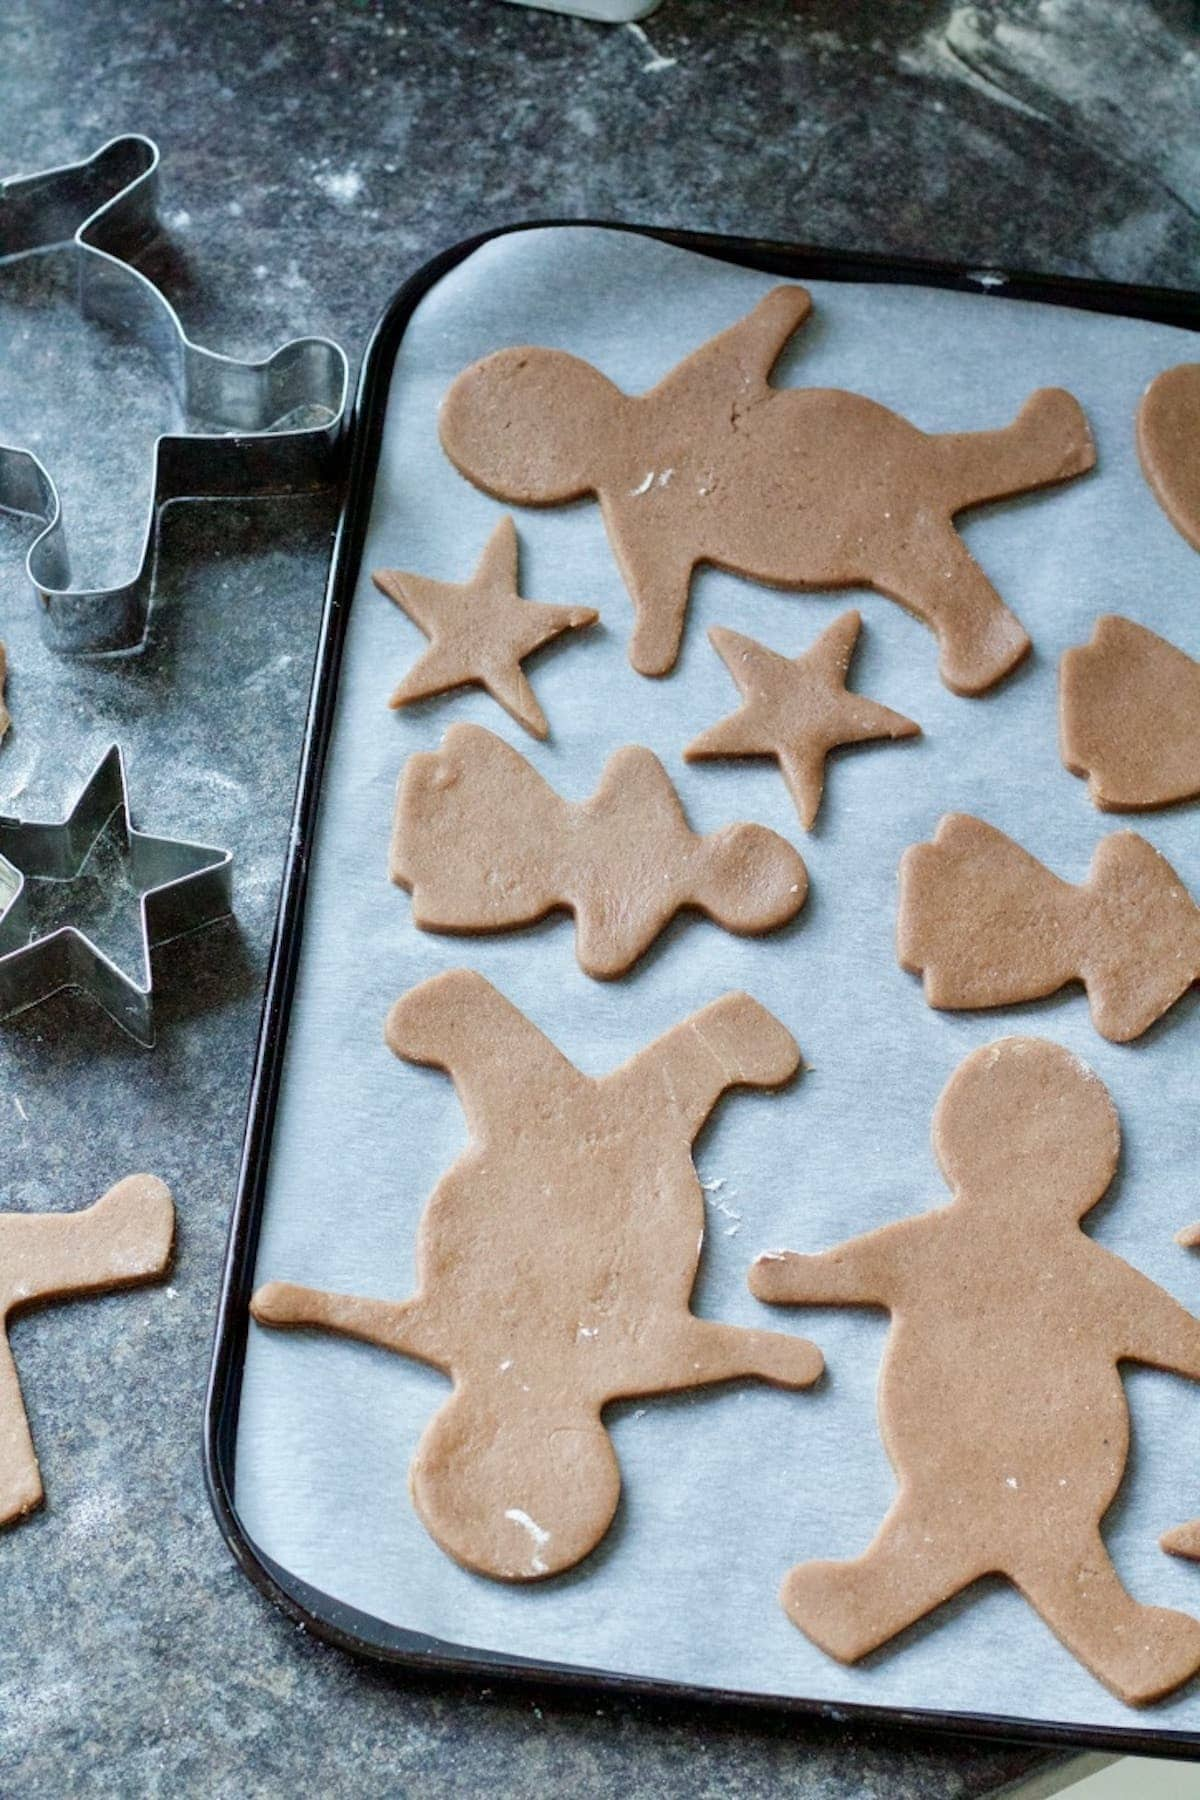 Cut out gingerbread biscuits on the baking tray.